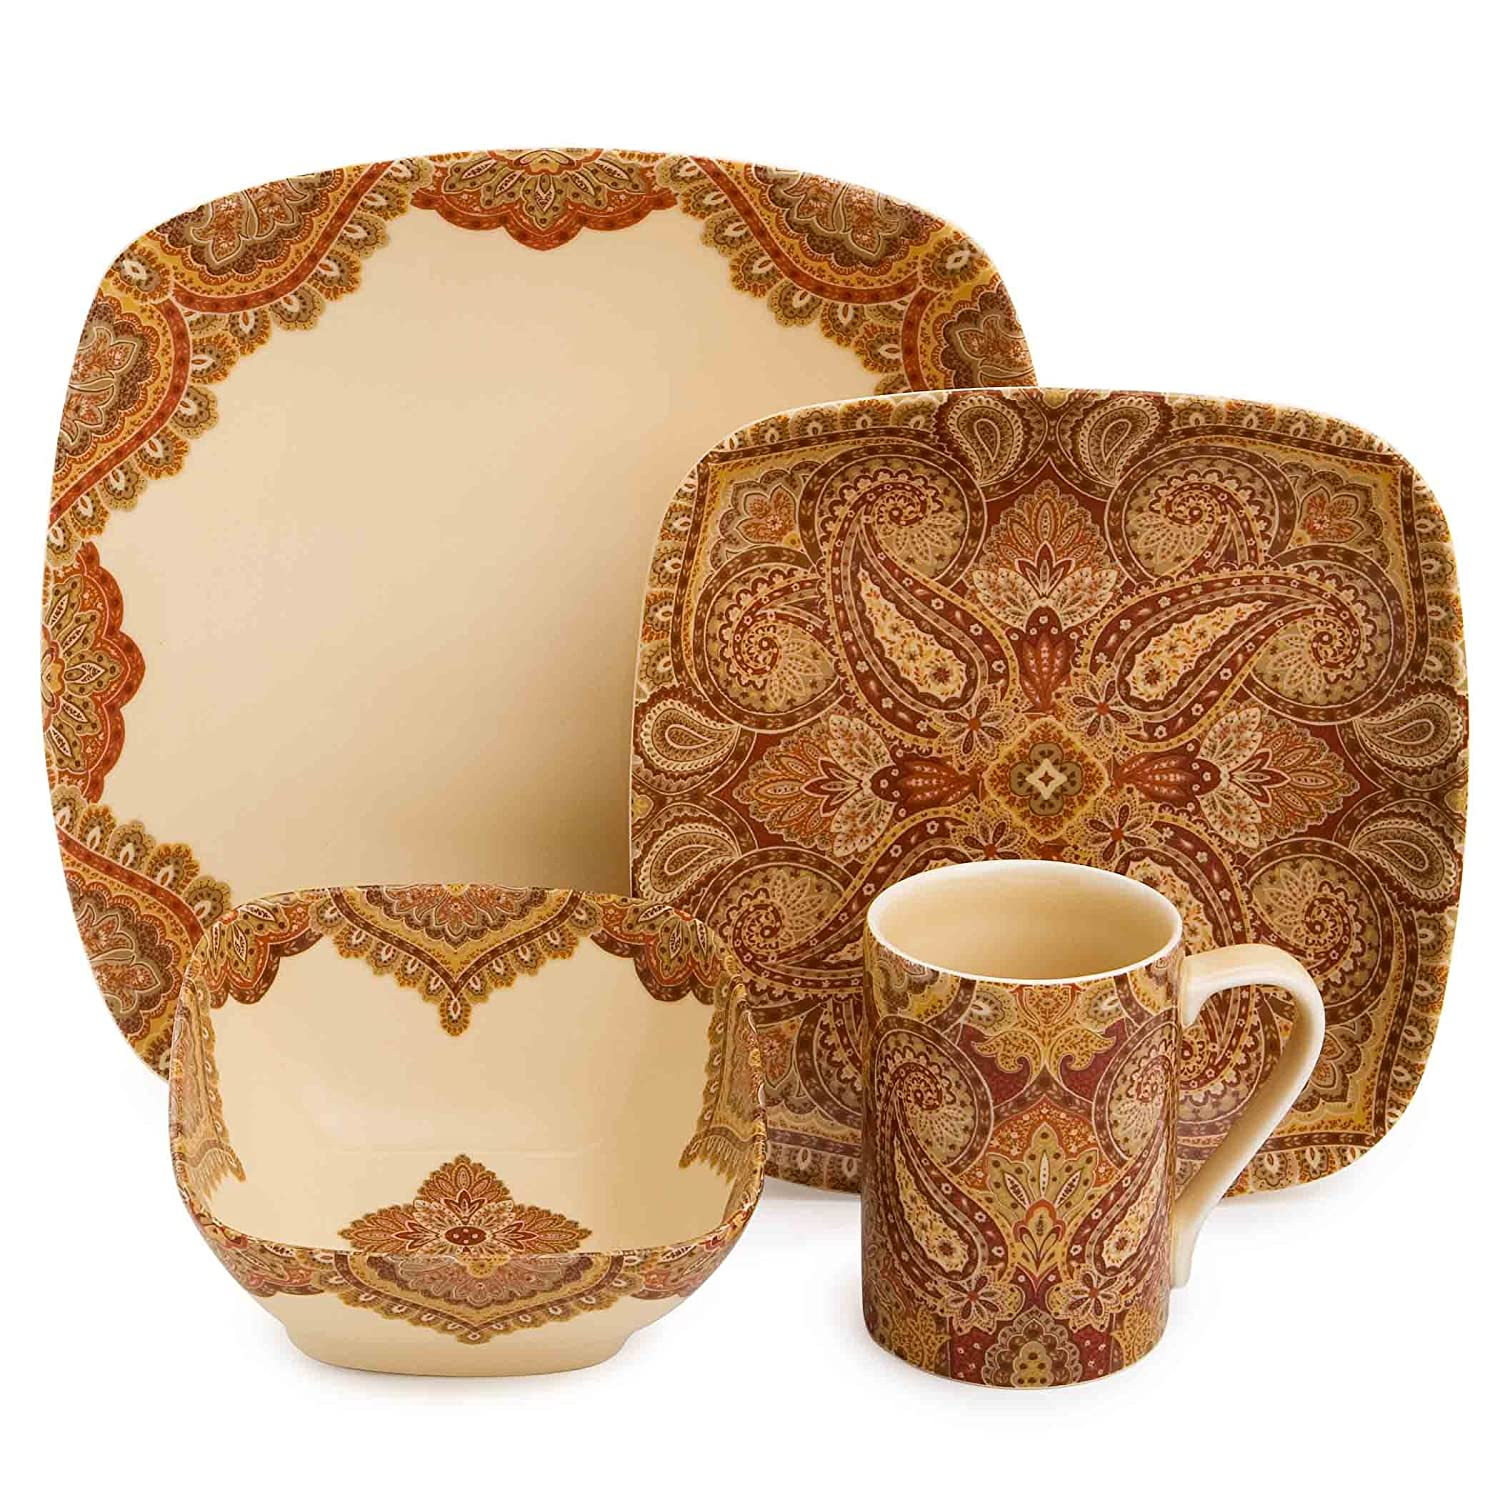 Amazon.com | 222 Fifth Spice Road 16-Piece Dinnerware Set Dinnerware Sets Dinnerware Sets  sc 1 st  Amazon.com & Amazon.com | 222 Fifth Spice Road 16-Piece Dinnerware Set ...